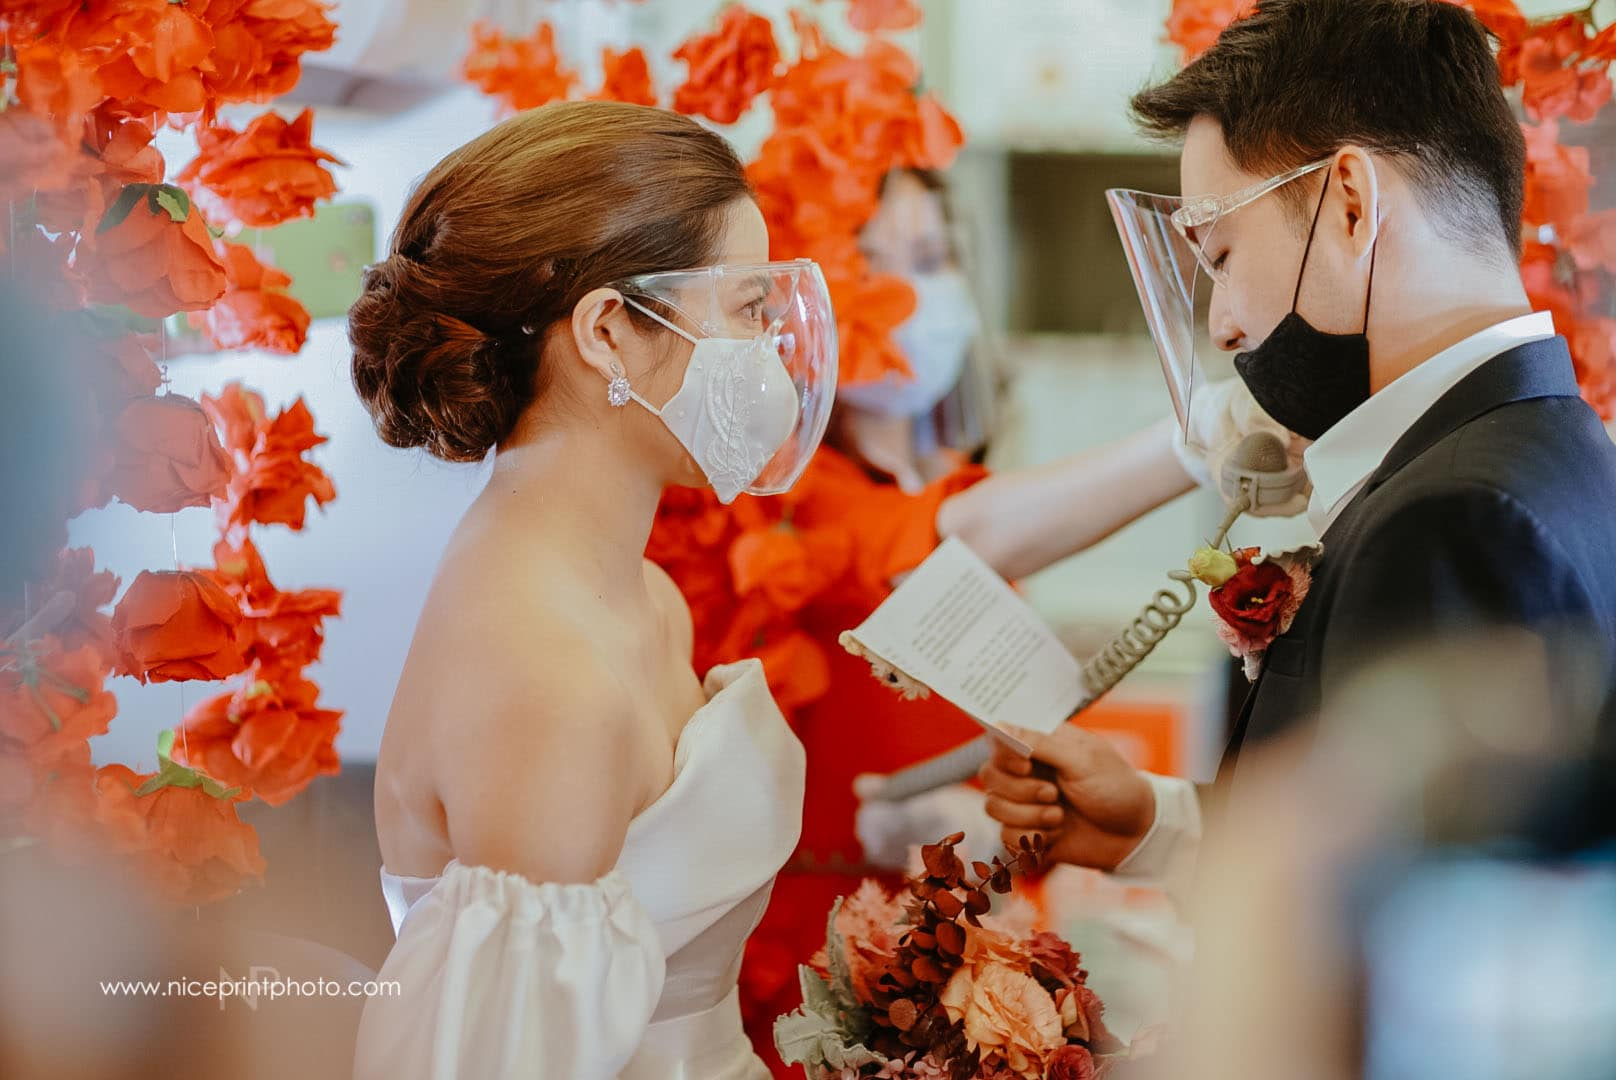 wedding of two flight attendants during a commercial flight: ceremony proper